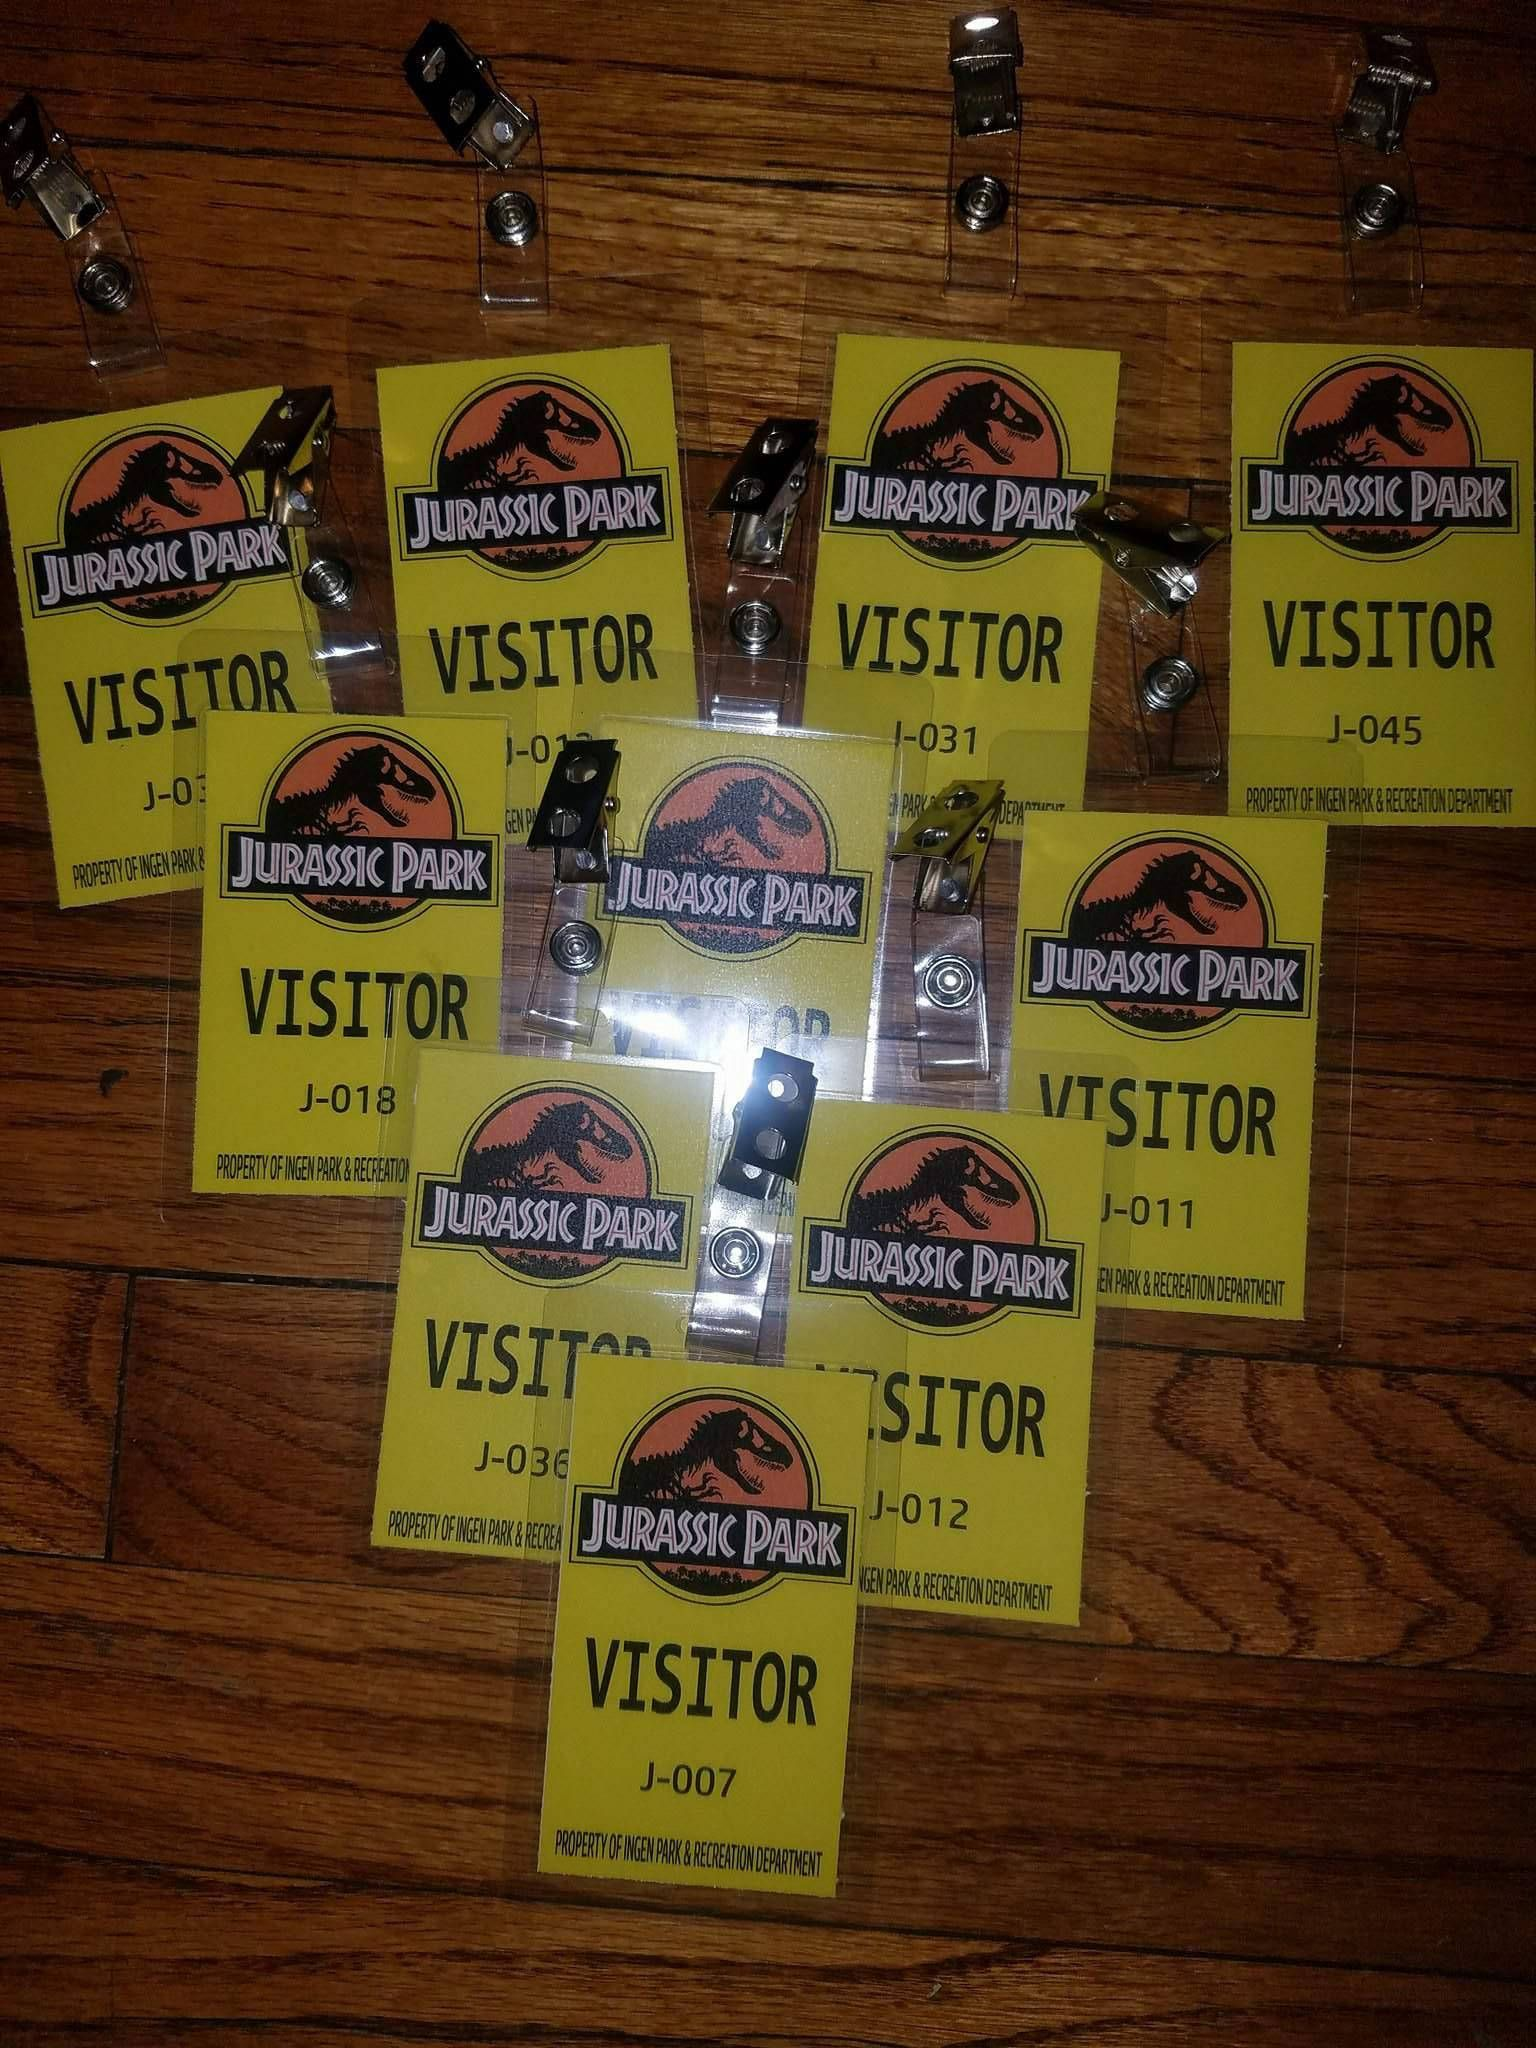 Jurassic Park World Badges Visitors VIP Rangers Security Party Favor Prop By HelpingCreate On Etsy